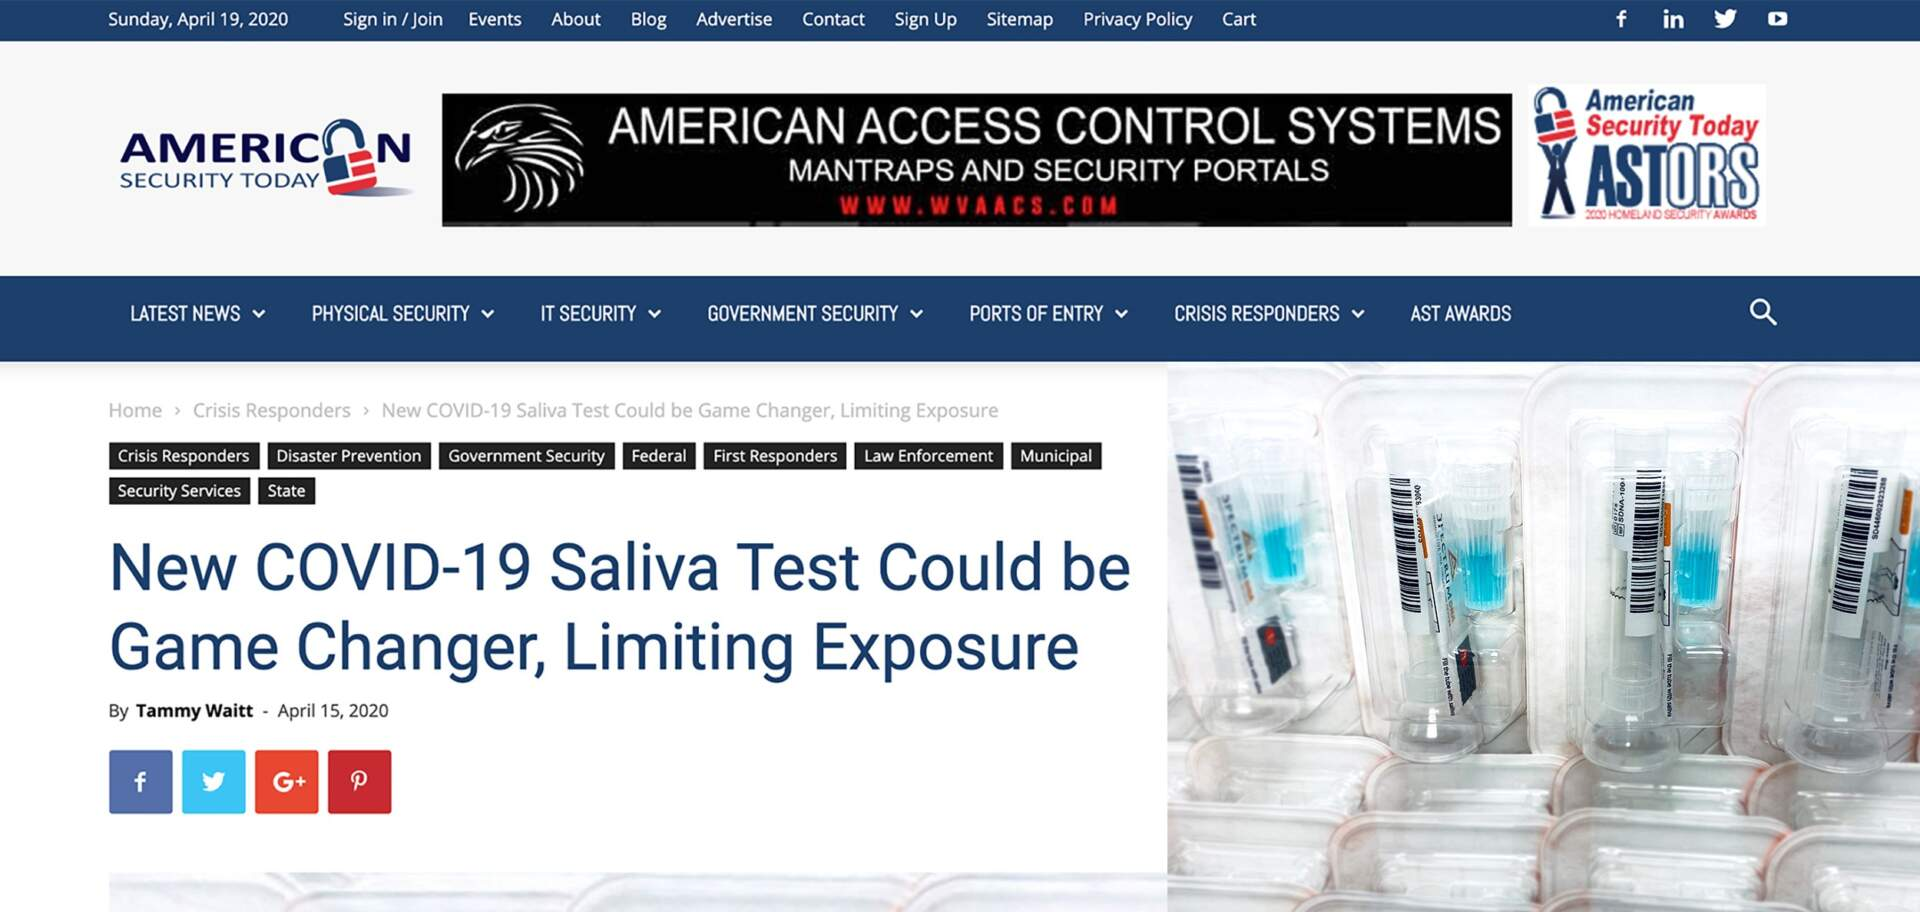 New COVID-19 Saliva Test Could be Game Changer, Limiting Exposure- American Security Today